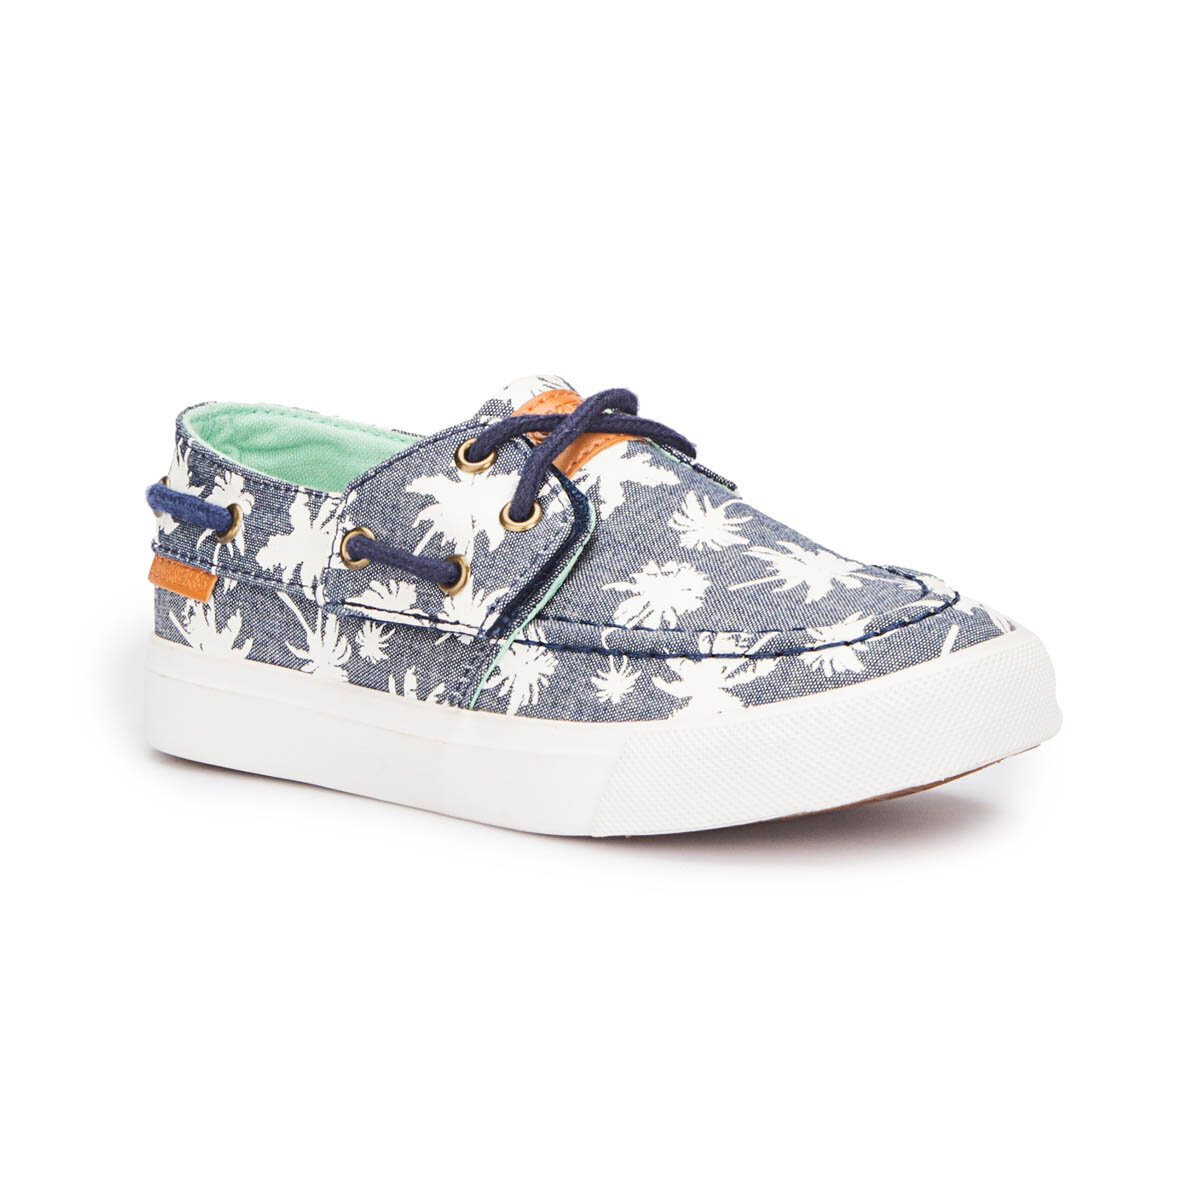 FLO 222633 Blue Male Child By Marin Shoes Dockers The Gerle